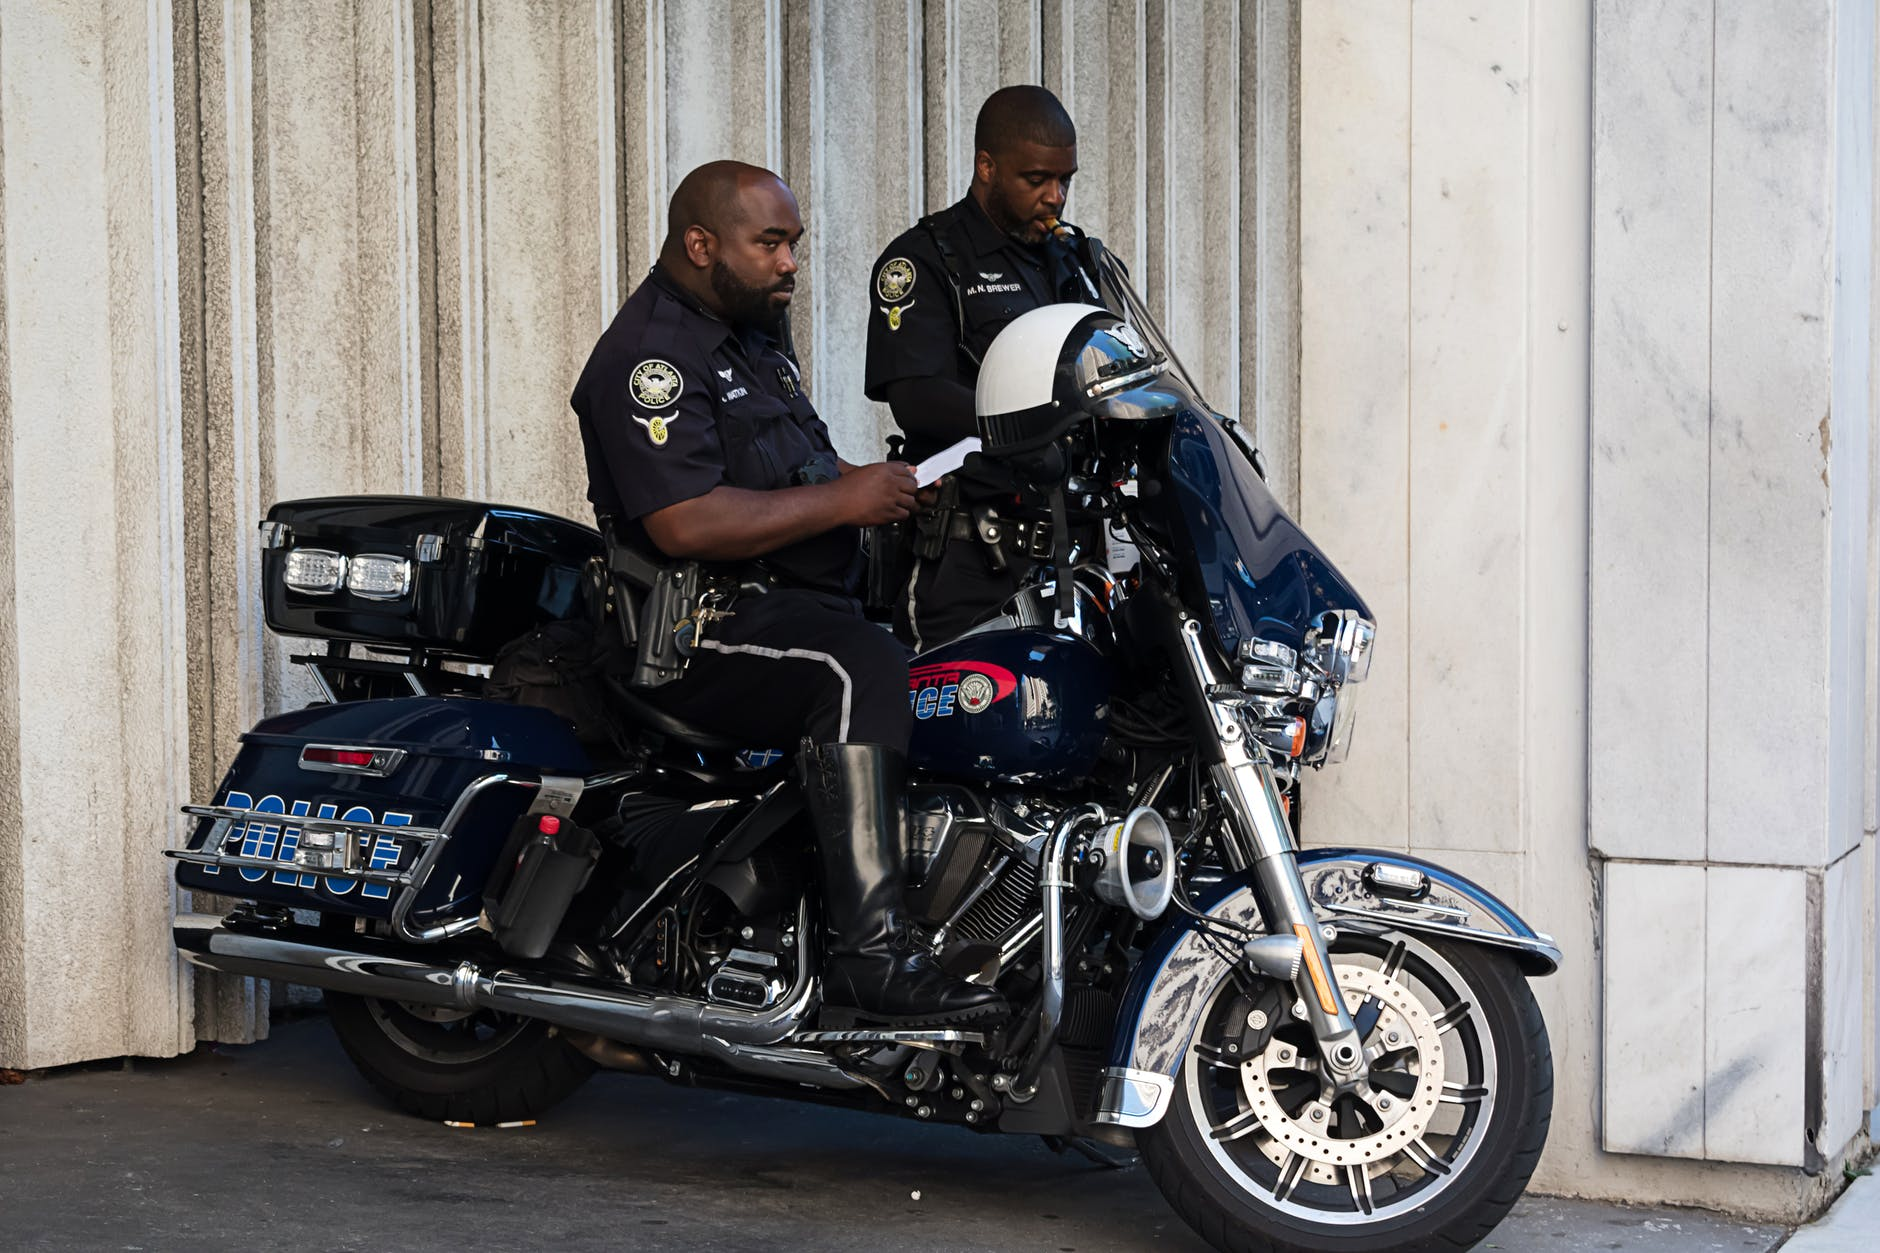 Two police officers on their motorcycle   Source: Pexels